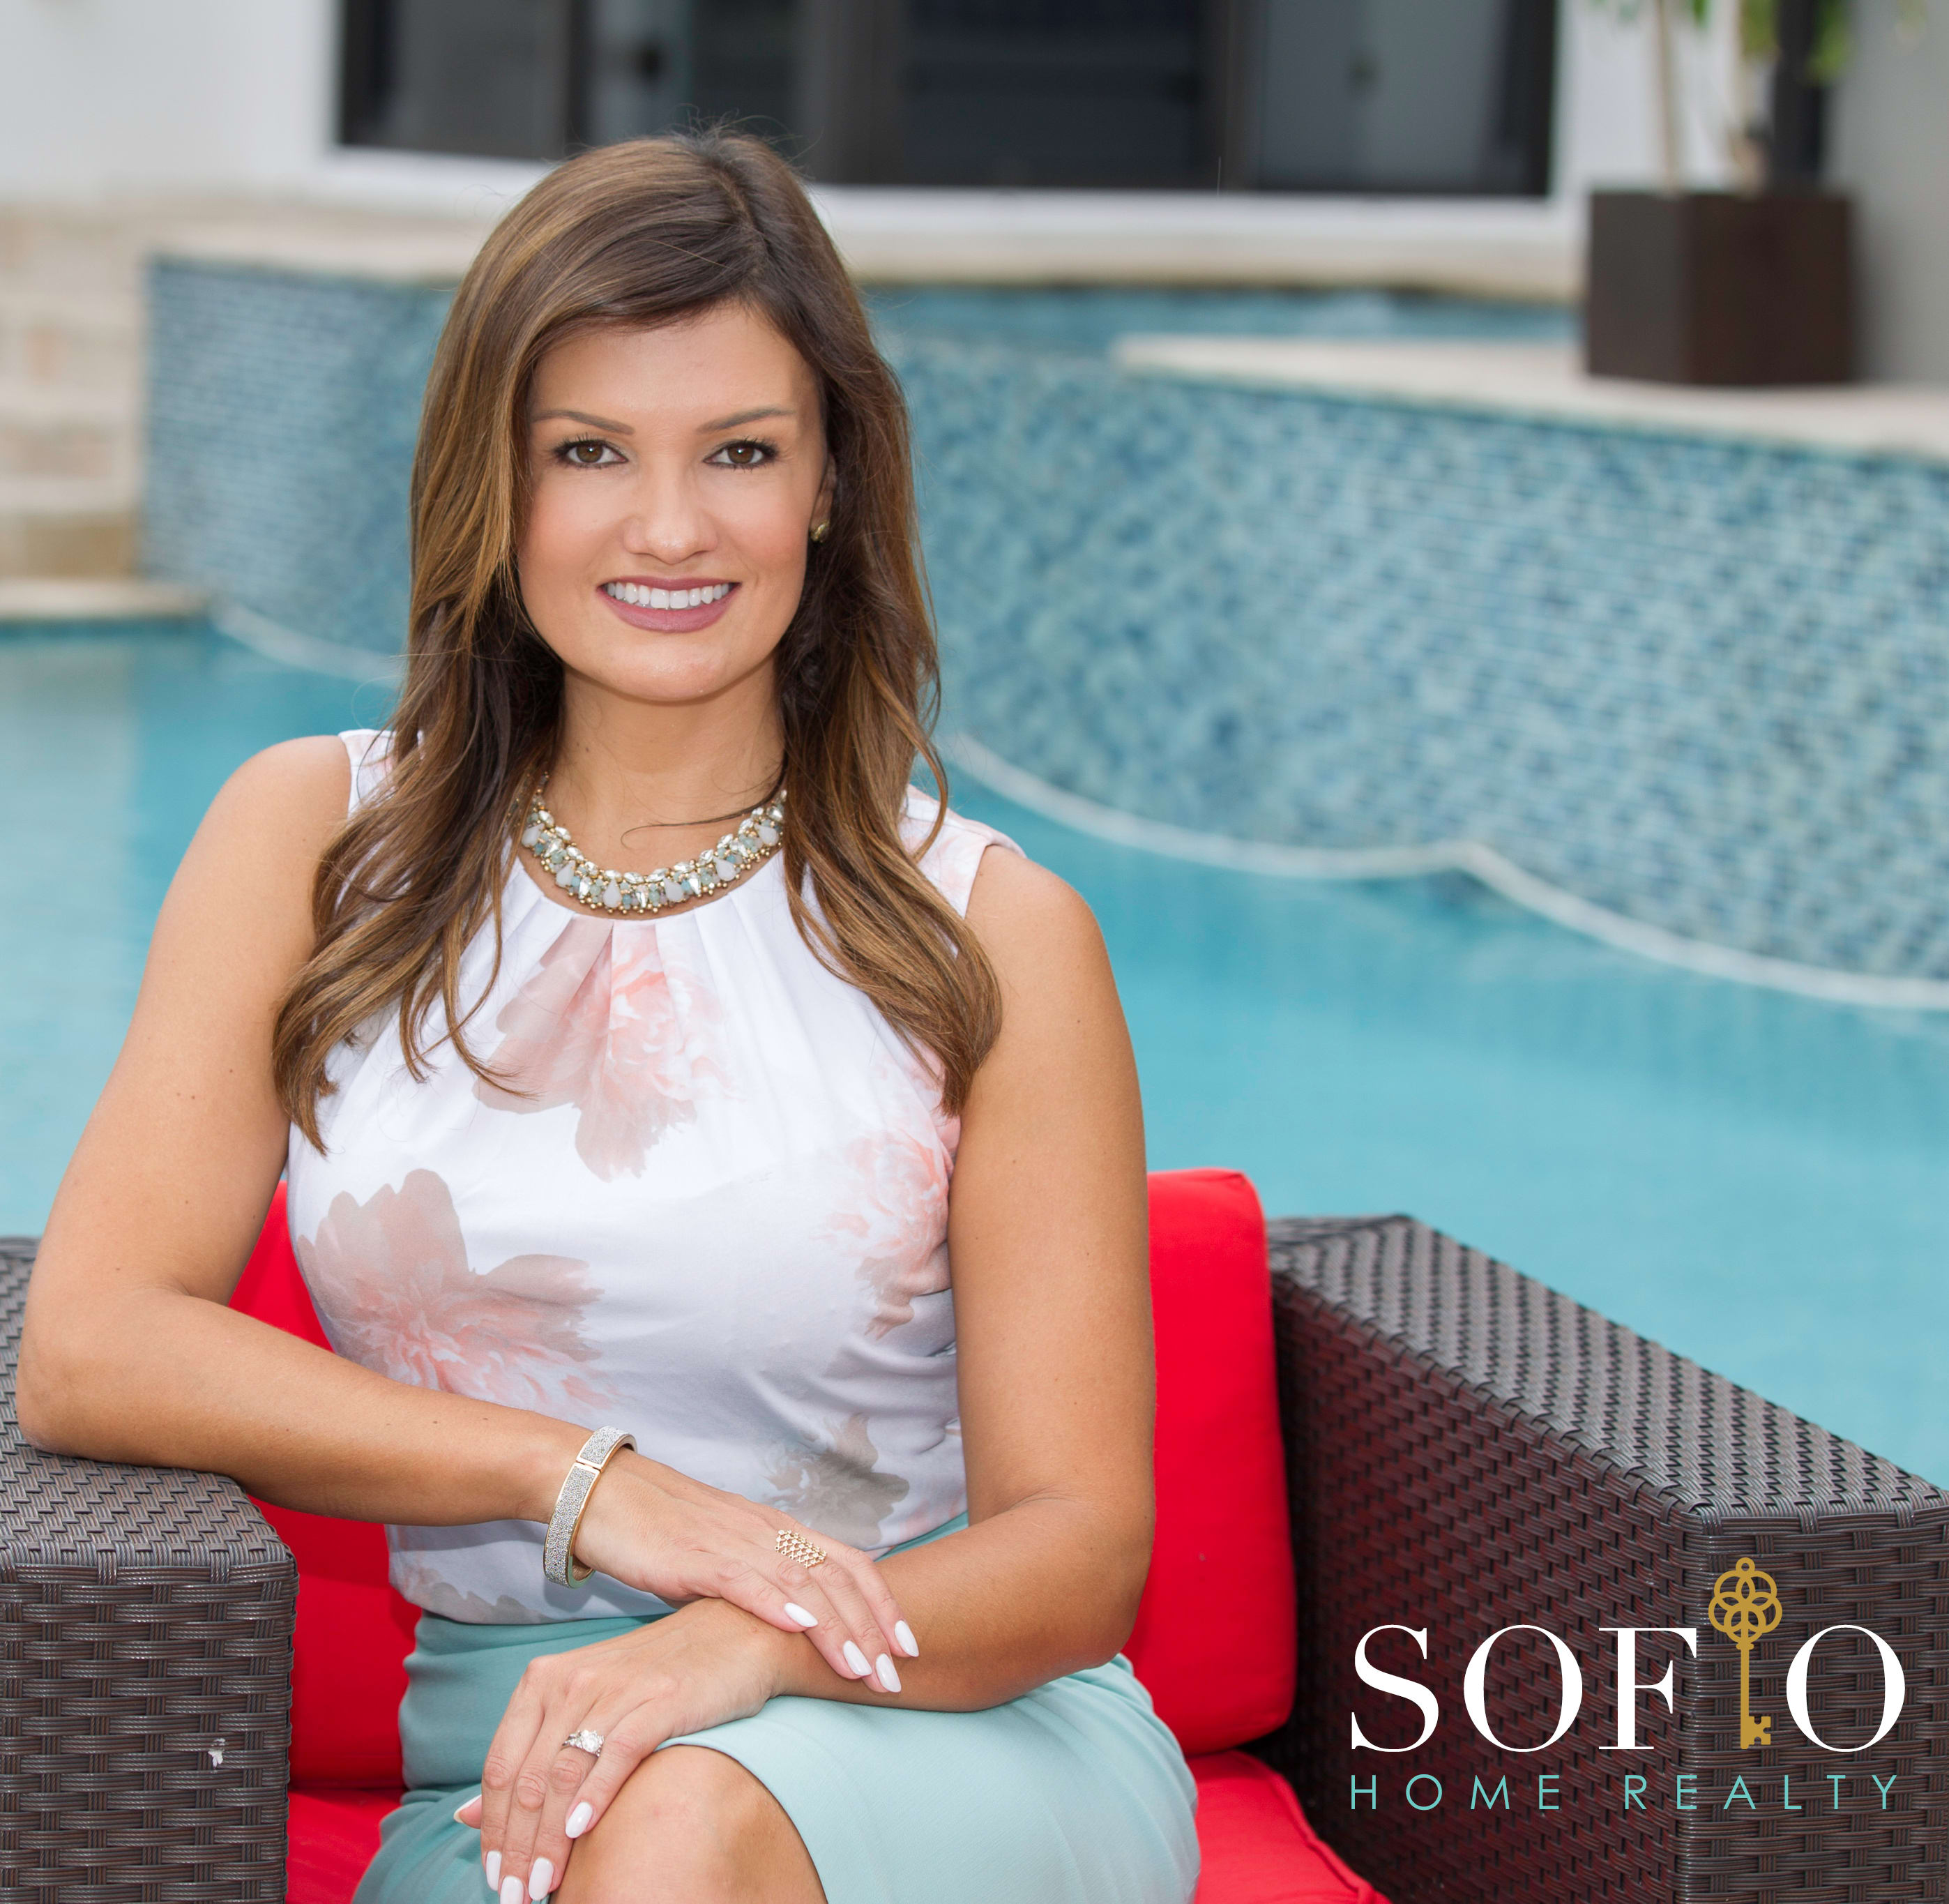 cover image for, About SOFLO Home Realty